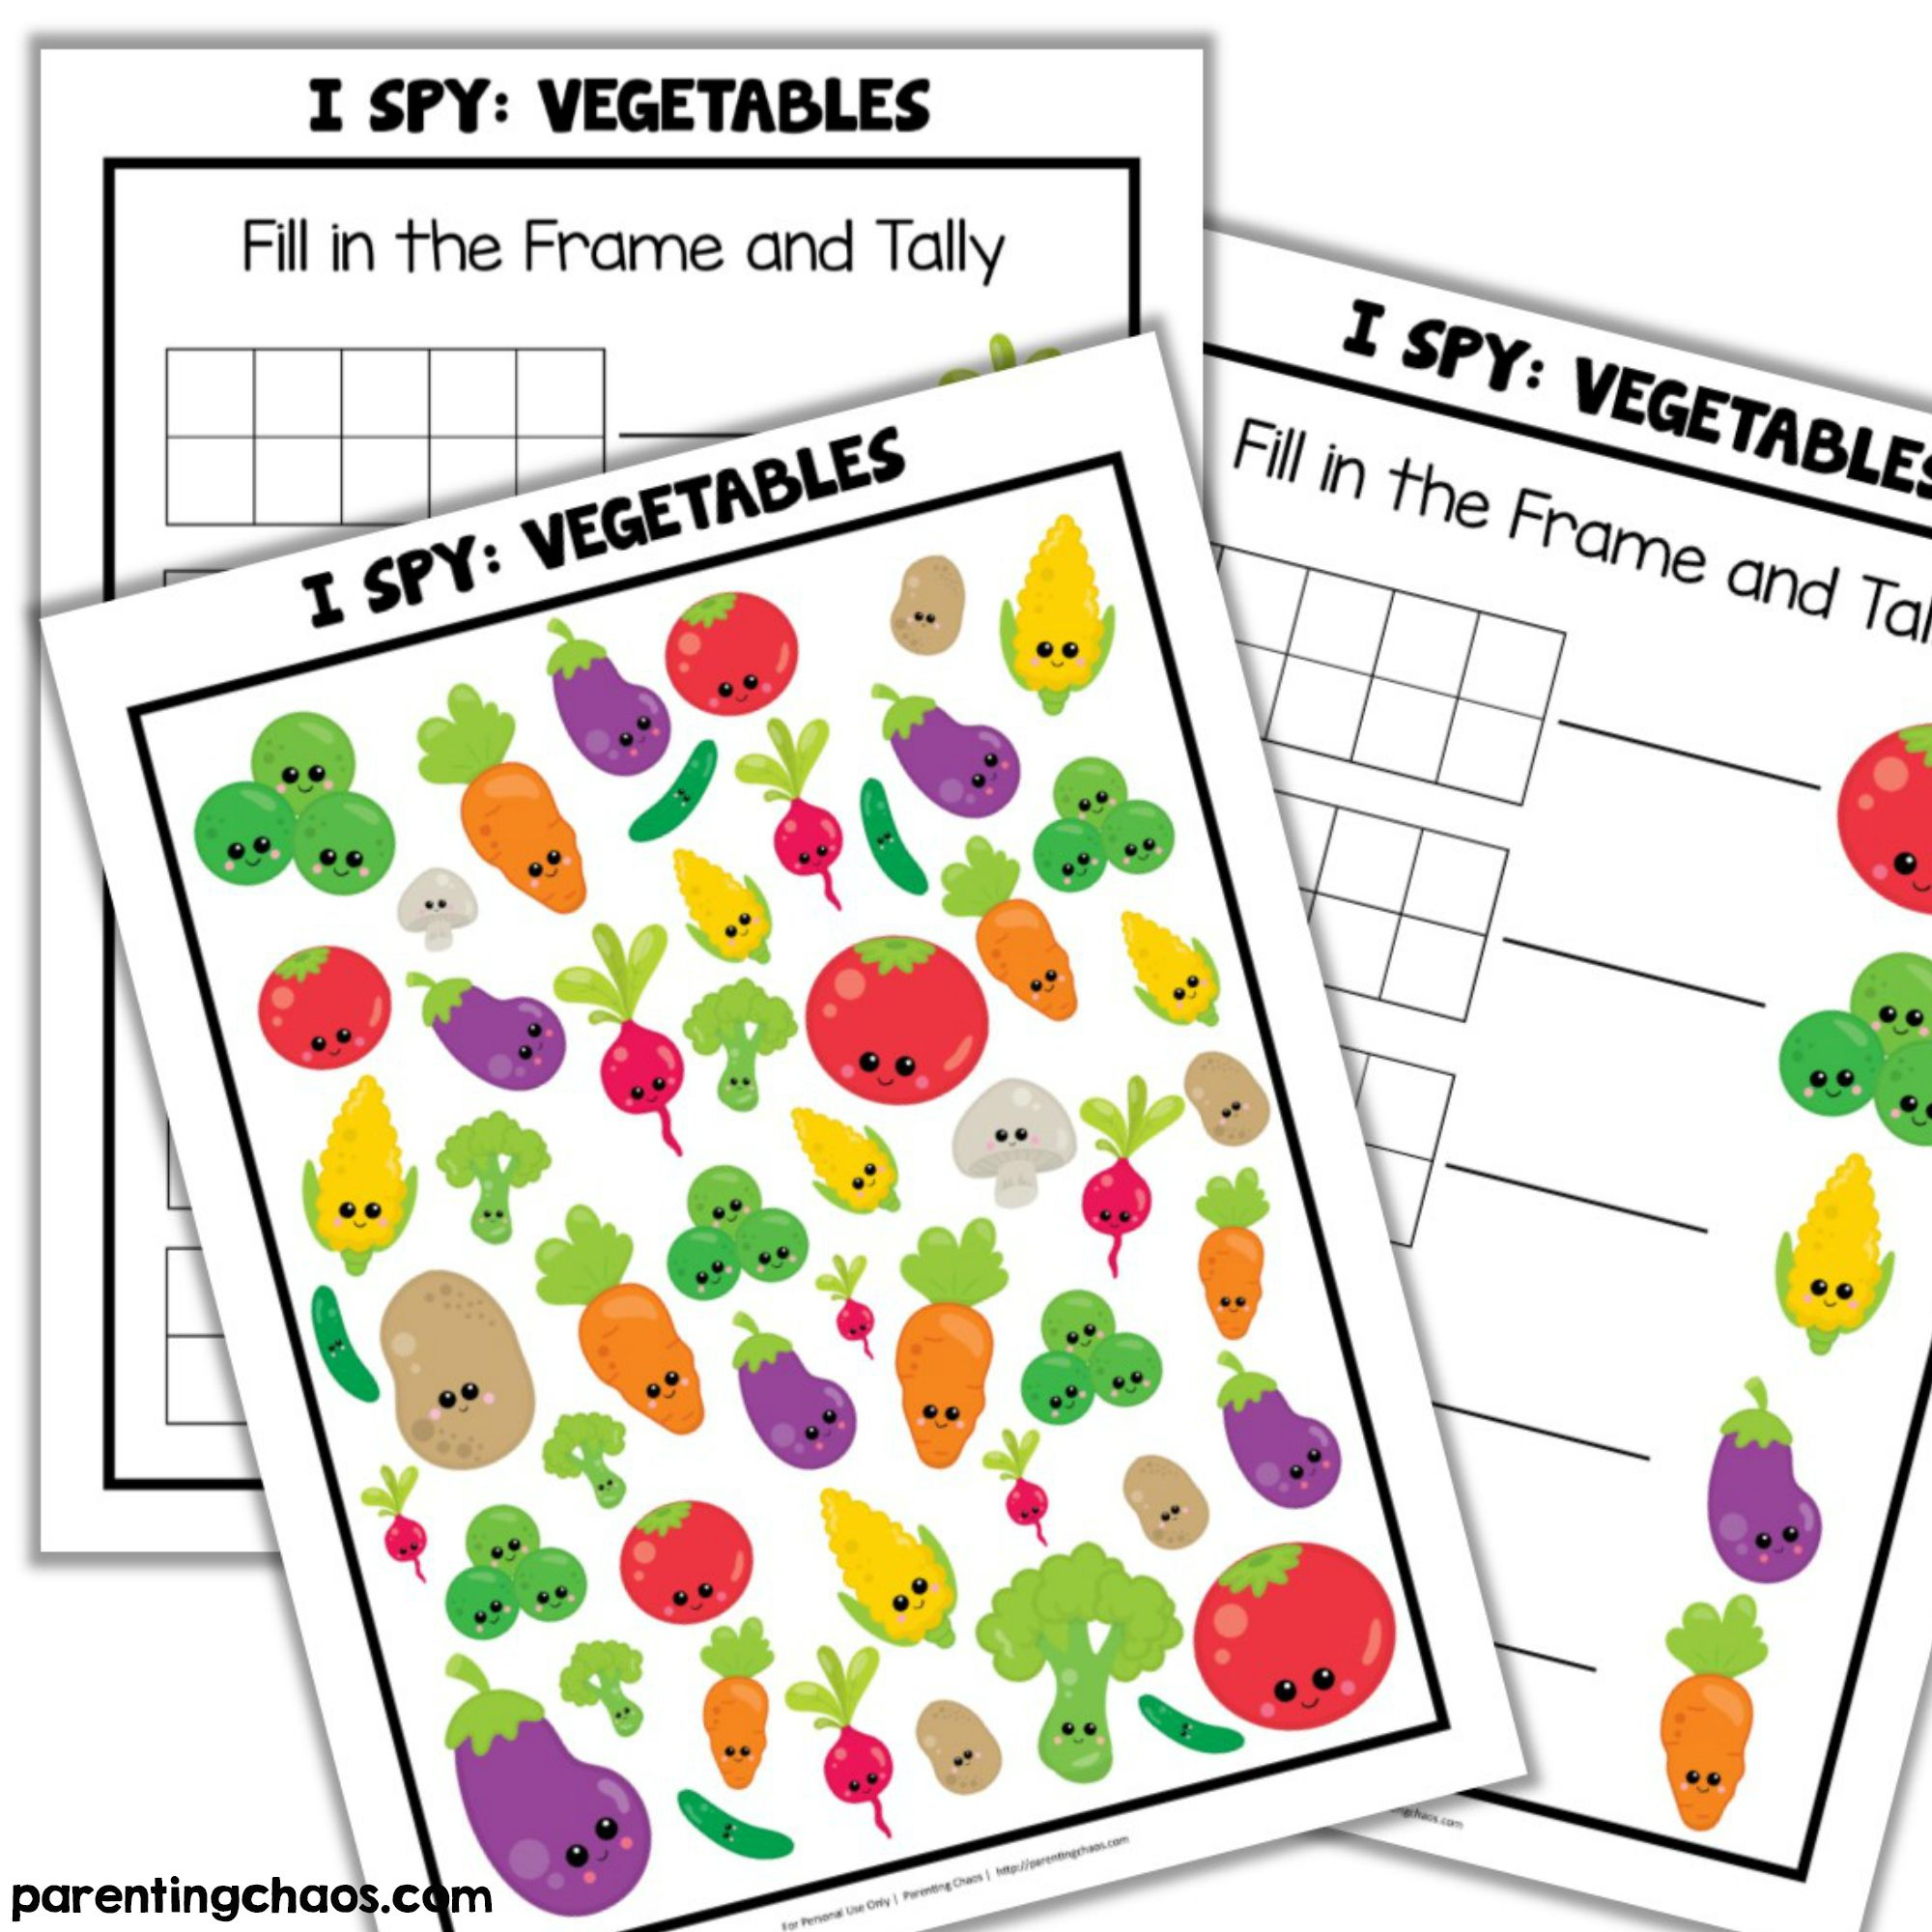 Vegetables I Spy Printable